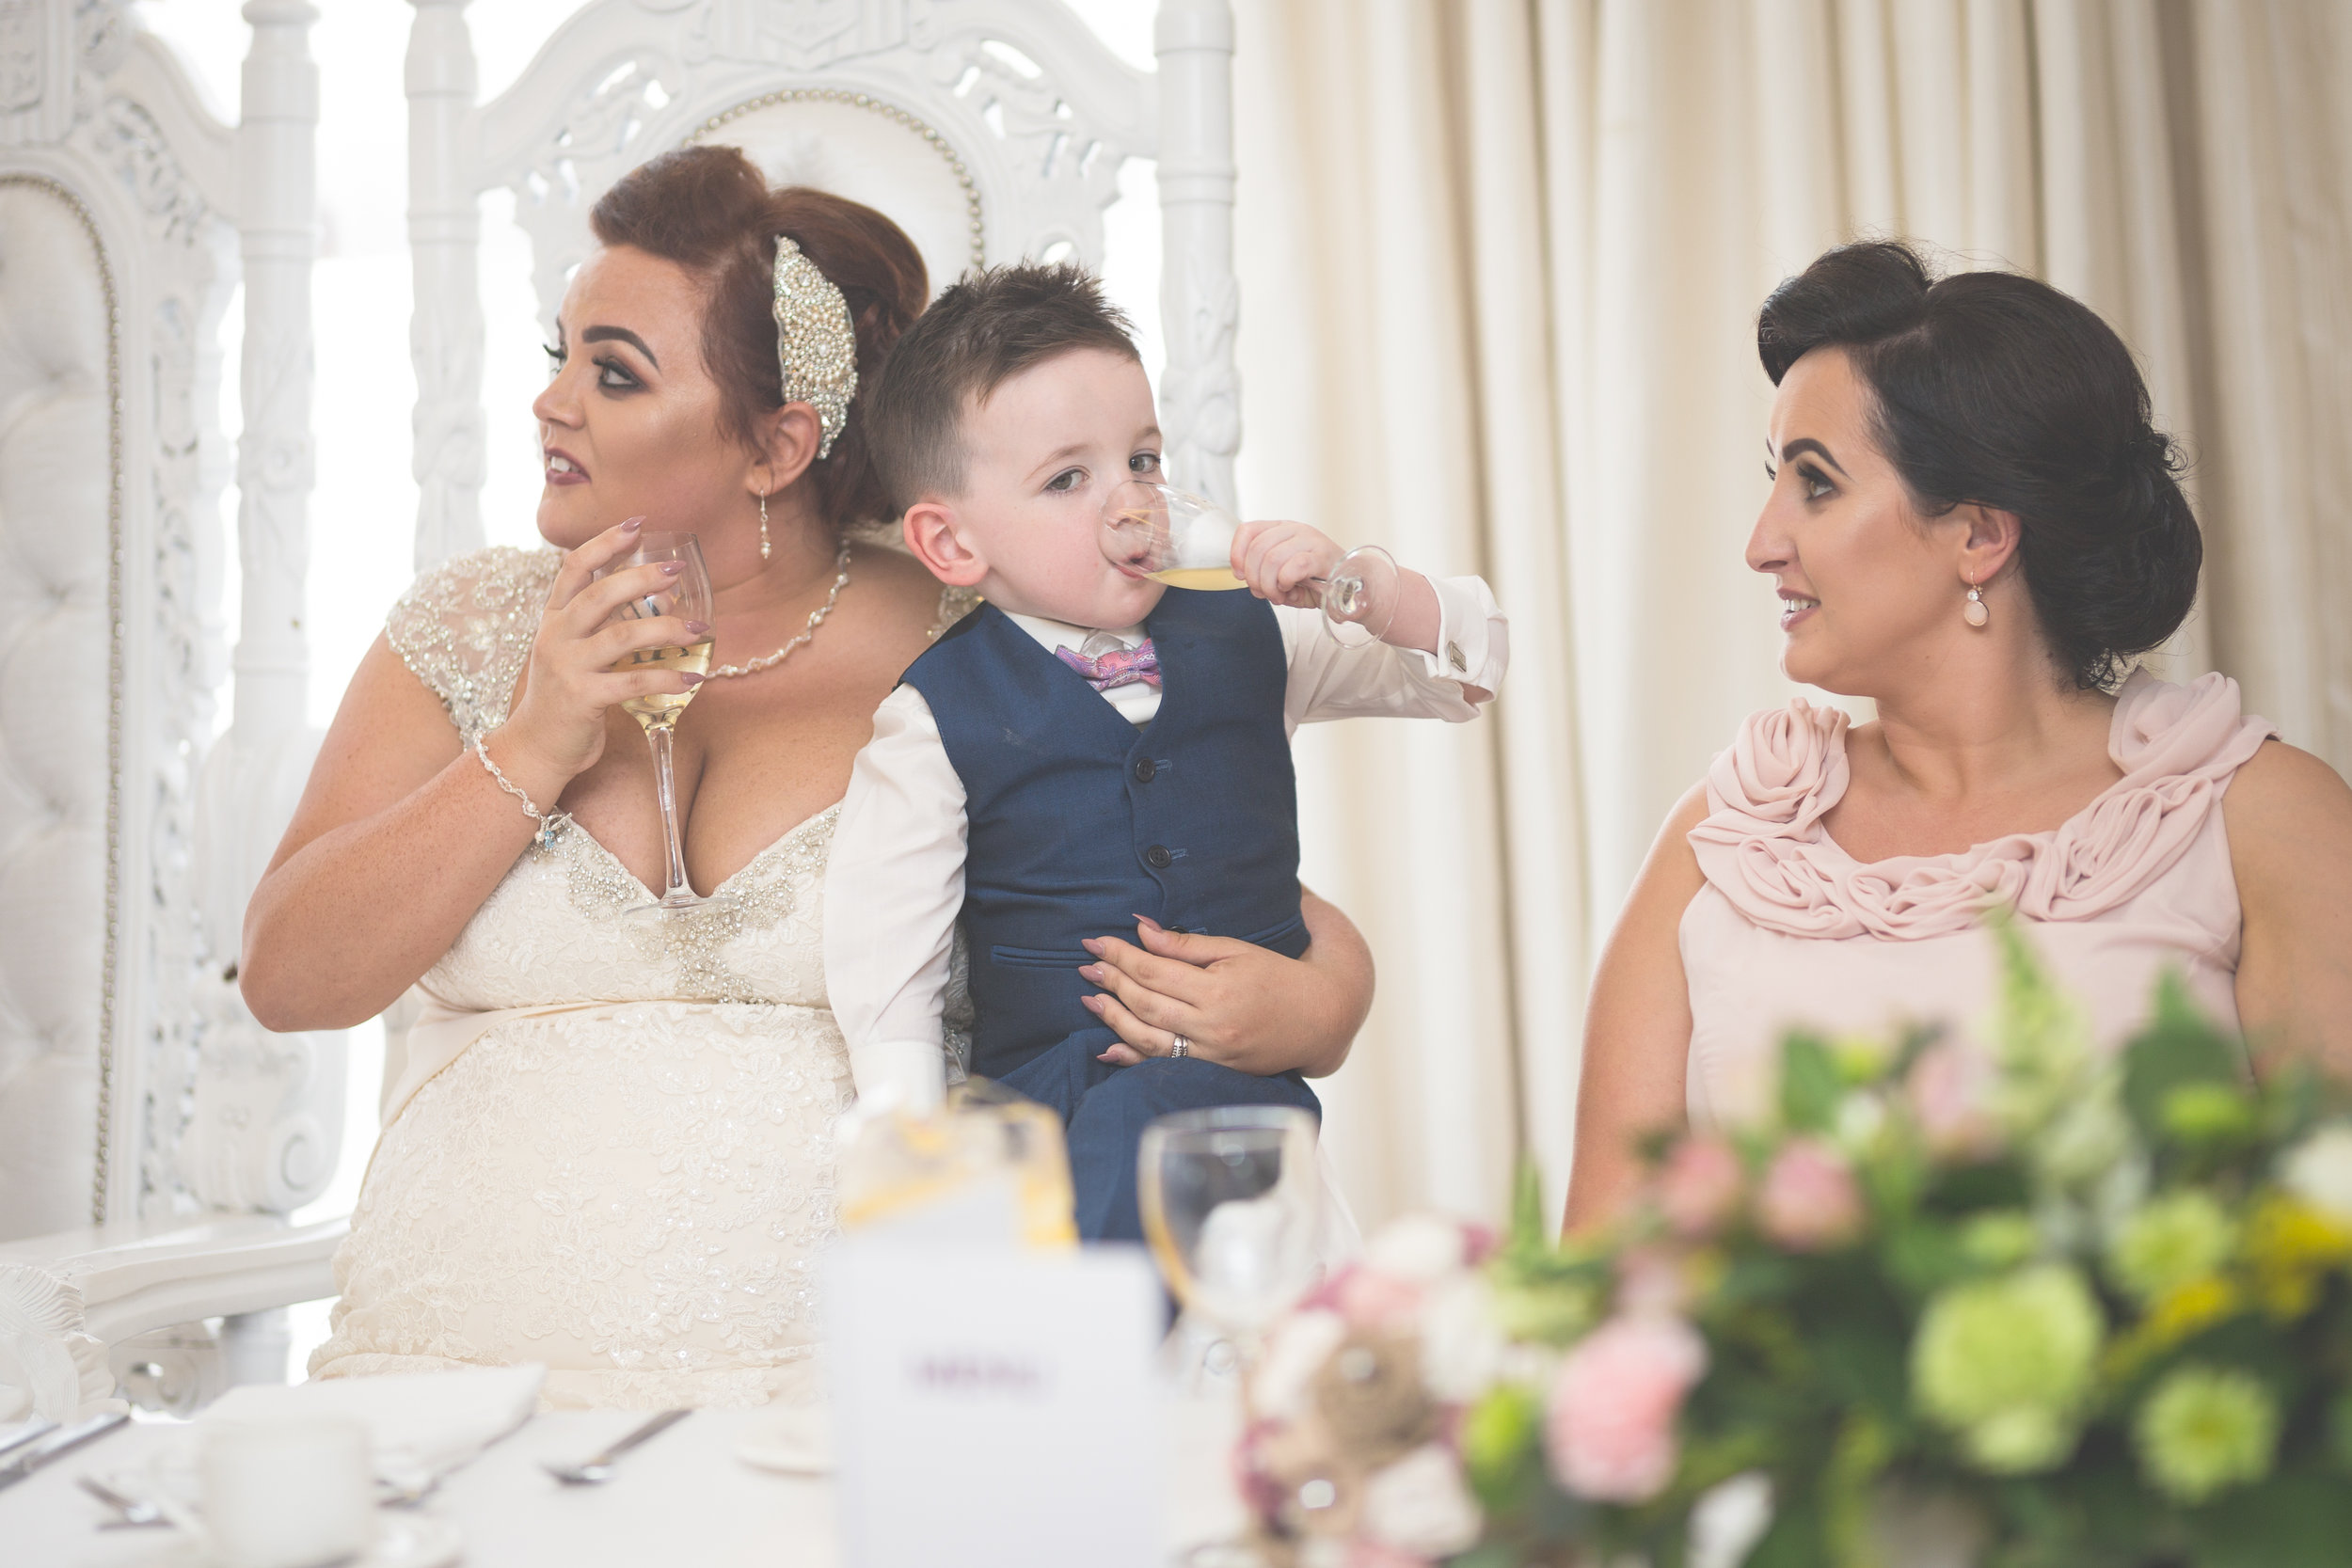 Antoinette & Stephen - Speeches | Brian McEwan Photography | Wedding Photographer Northern Ireland 85.jpg